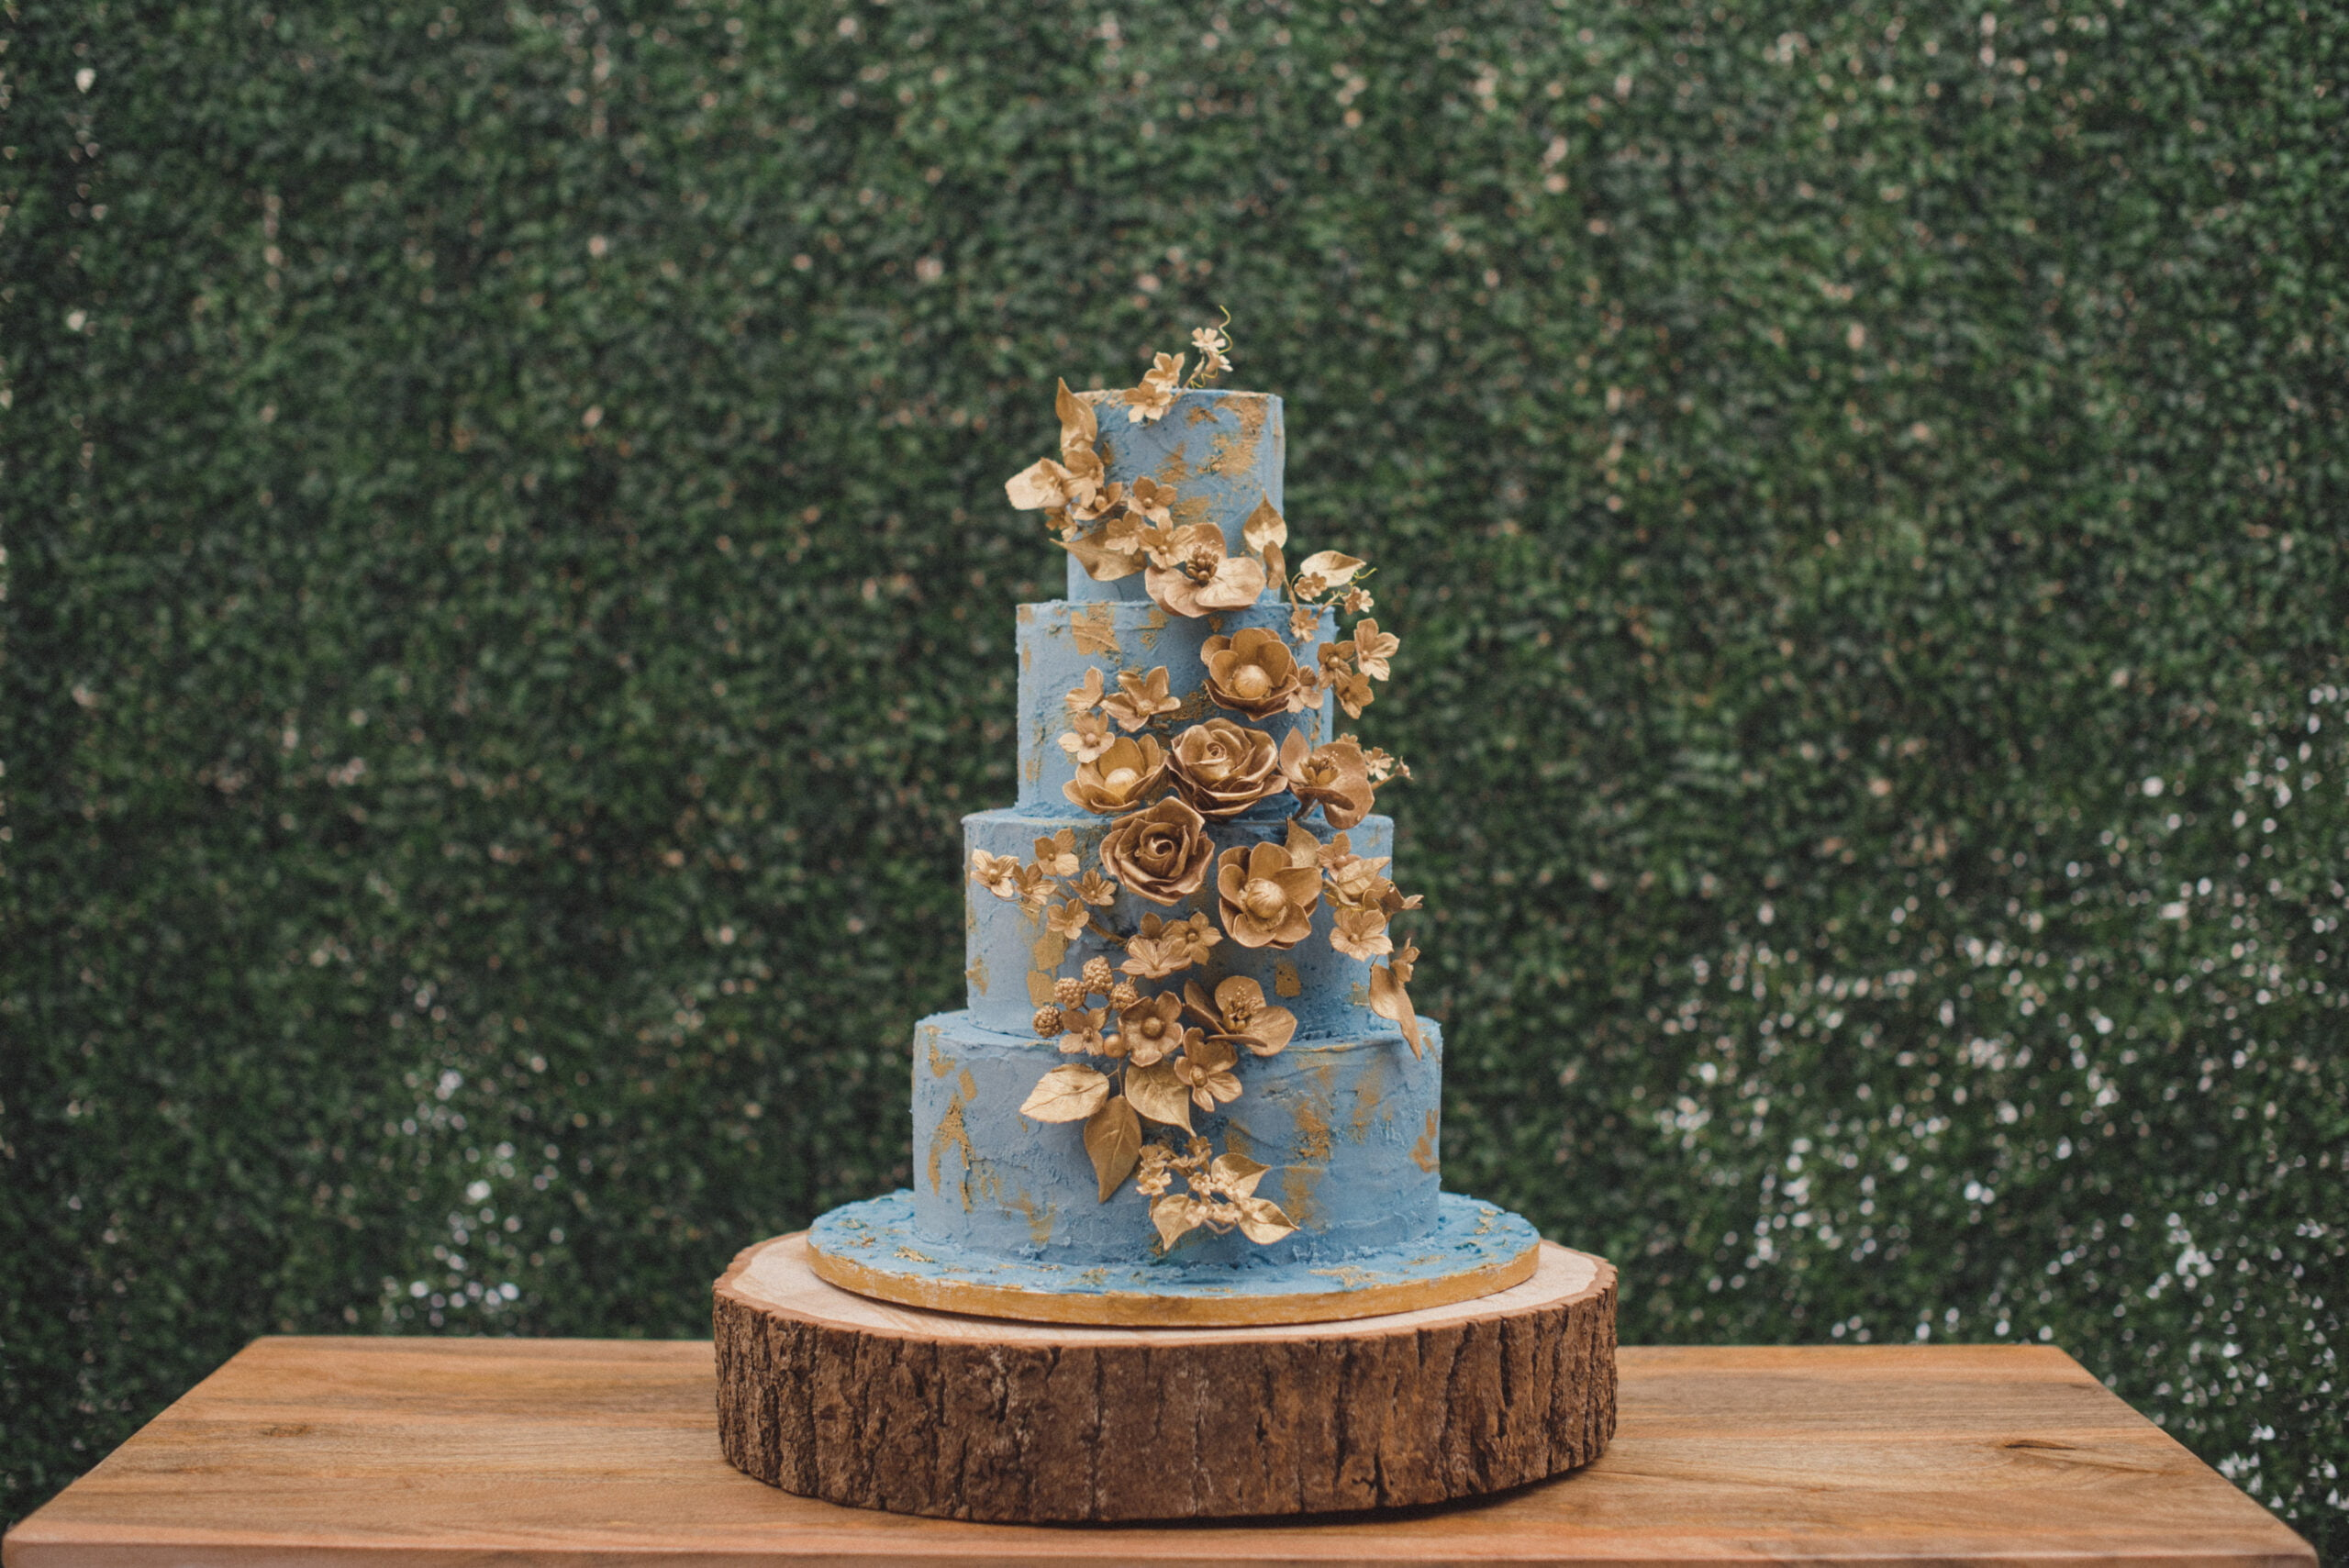 Cornflower blue buttercream wedding cake finished with gold painted elements and handmade gold painted sugar flowers designed by Bluebell Kitchen